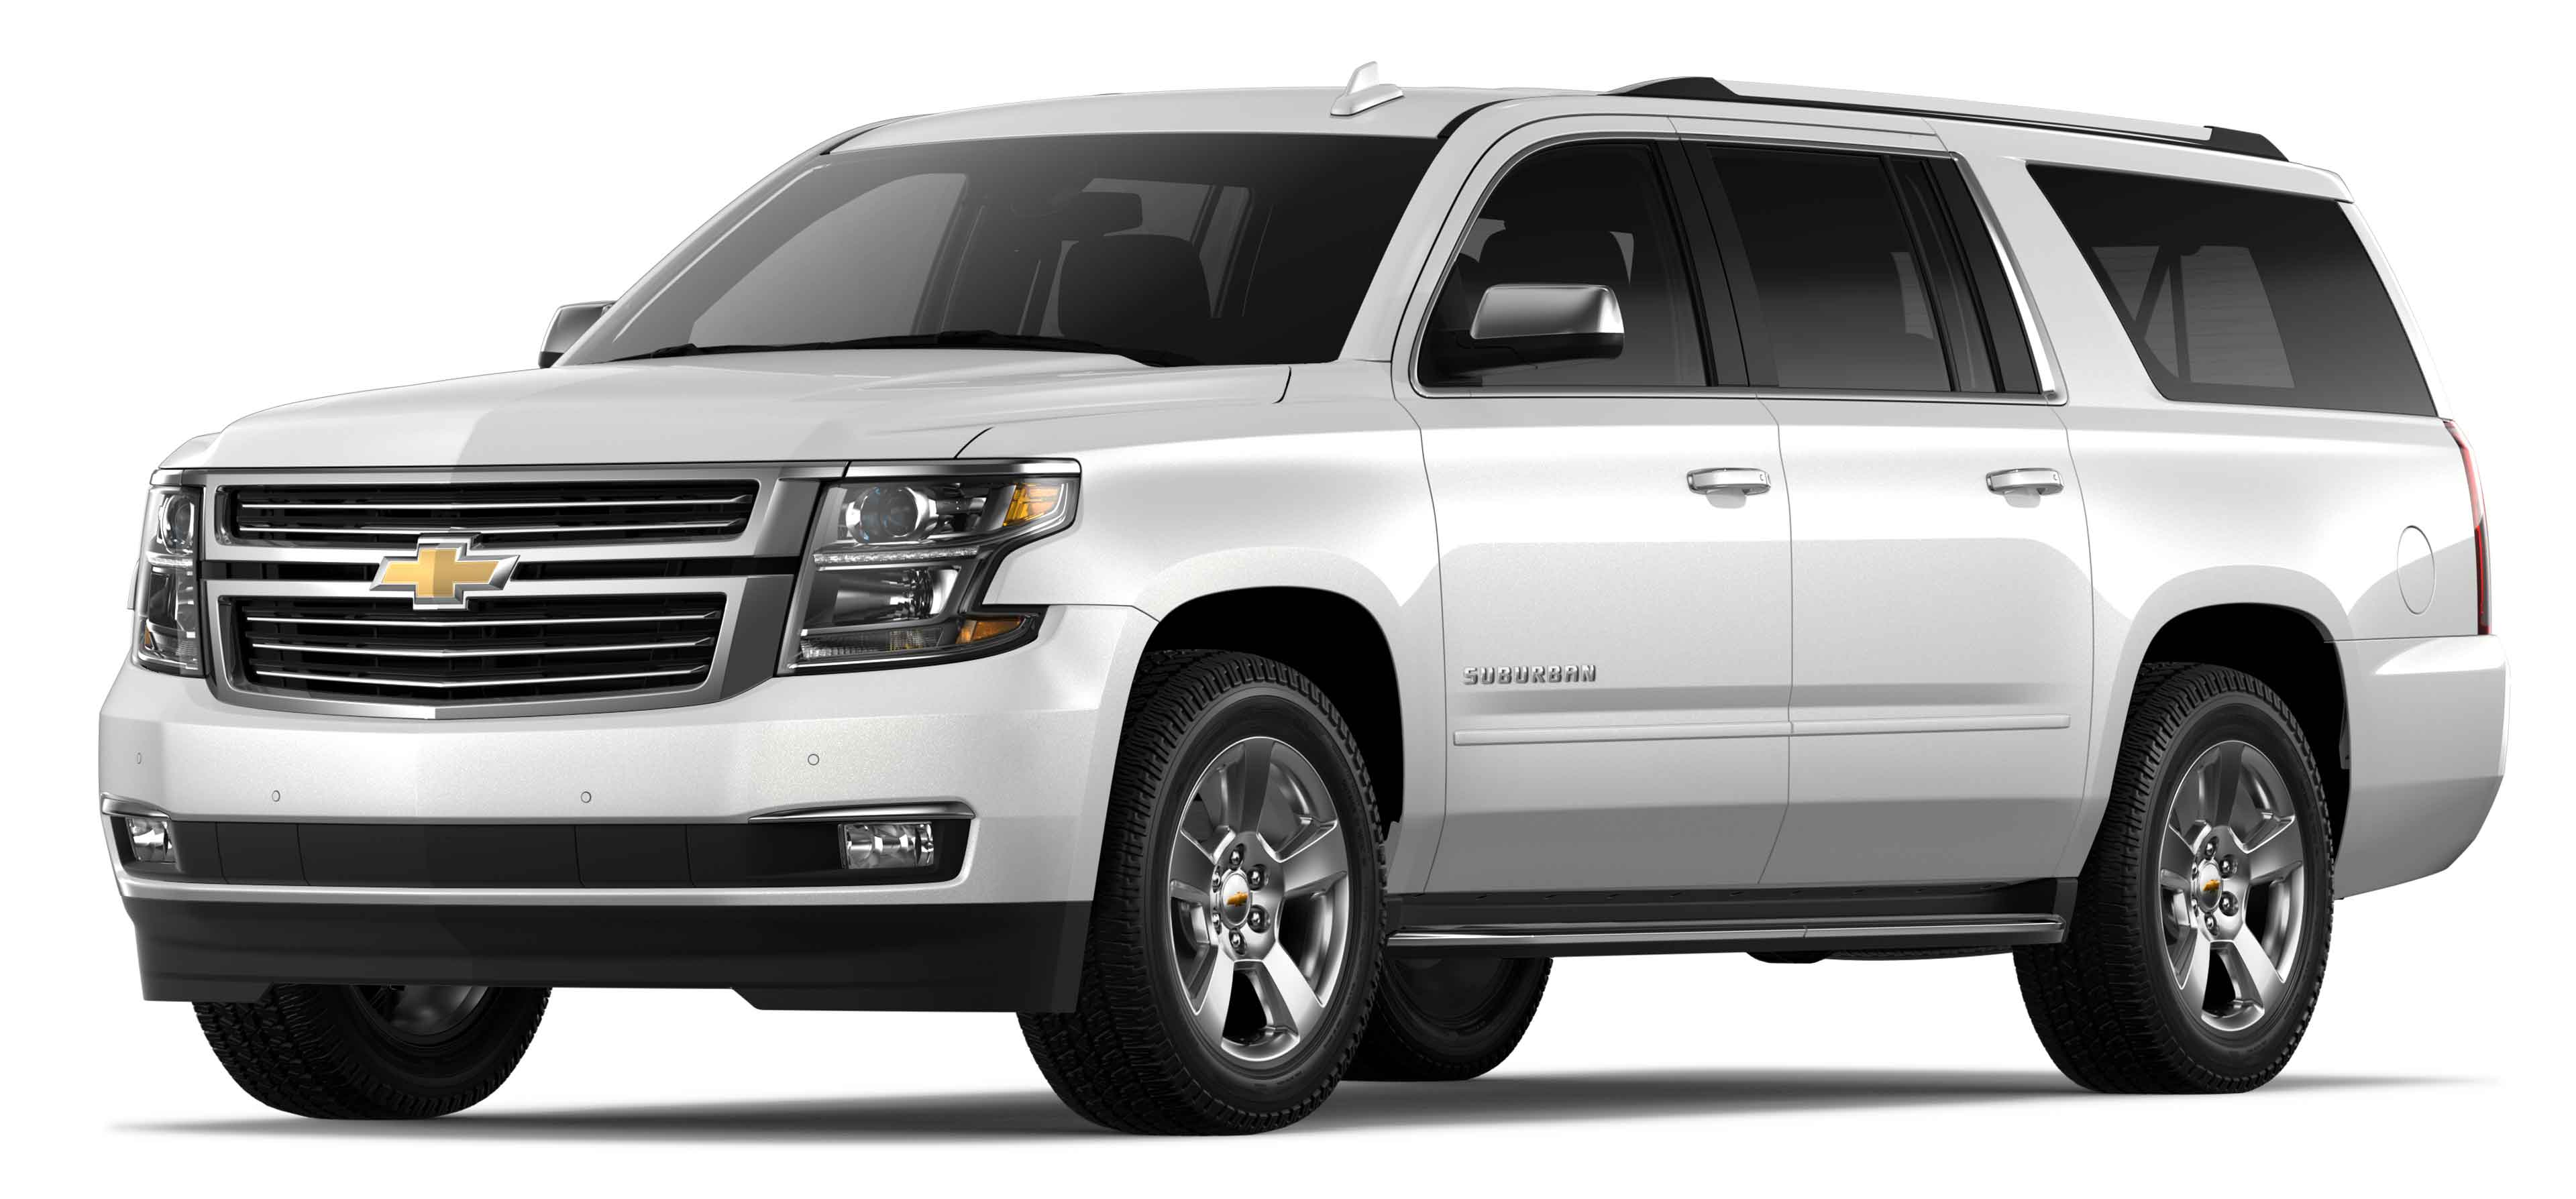 Lafayette - New Chevrolet Suburban Vehicles for Sale